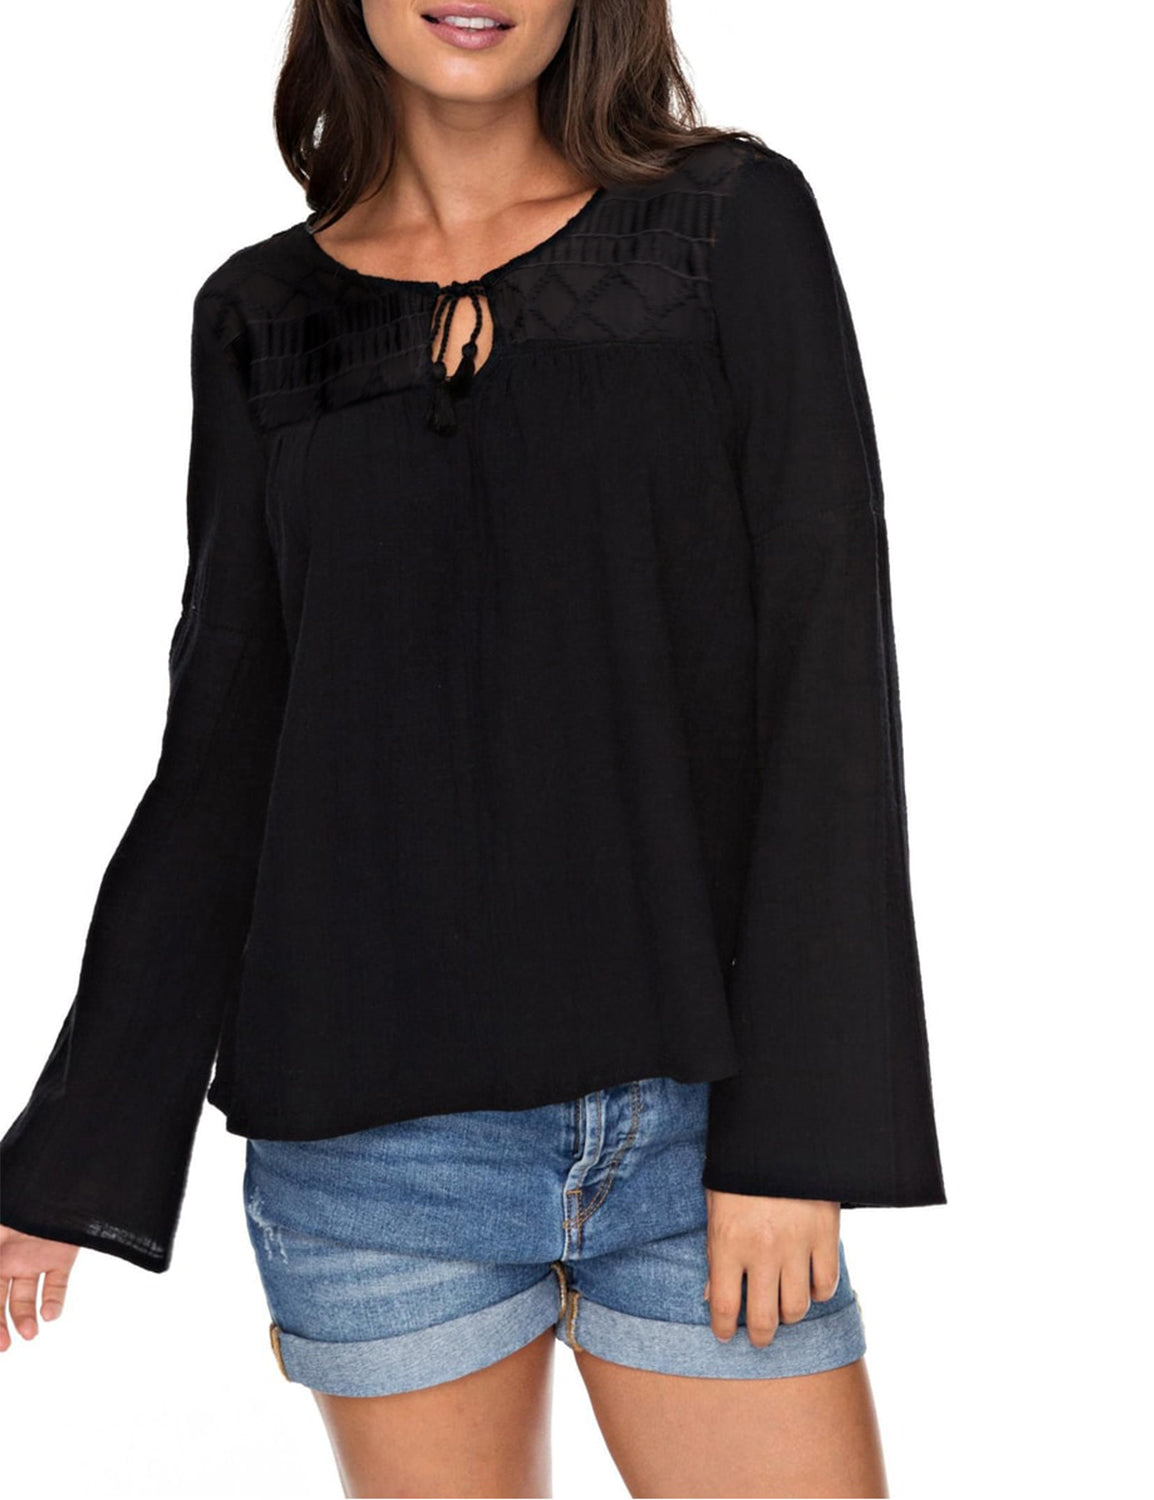 Contrast Lace Tie Hollow Out Flare Sleeve Blouse